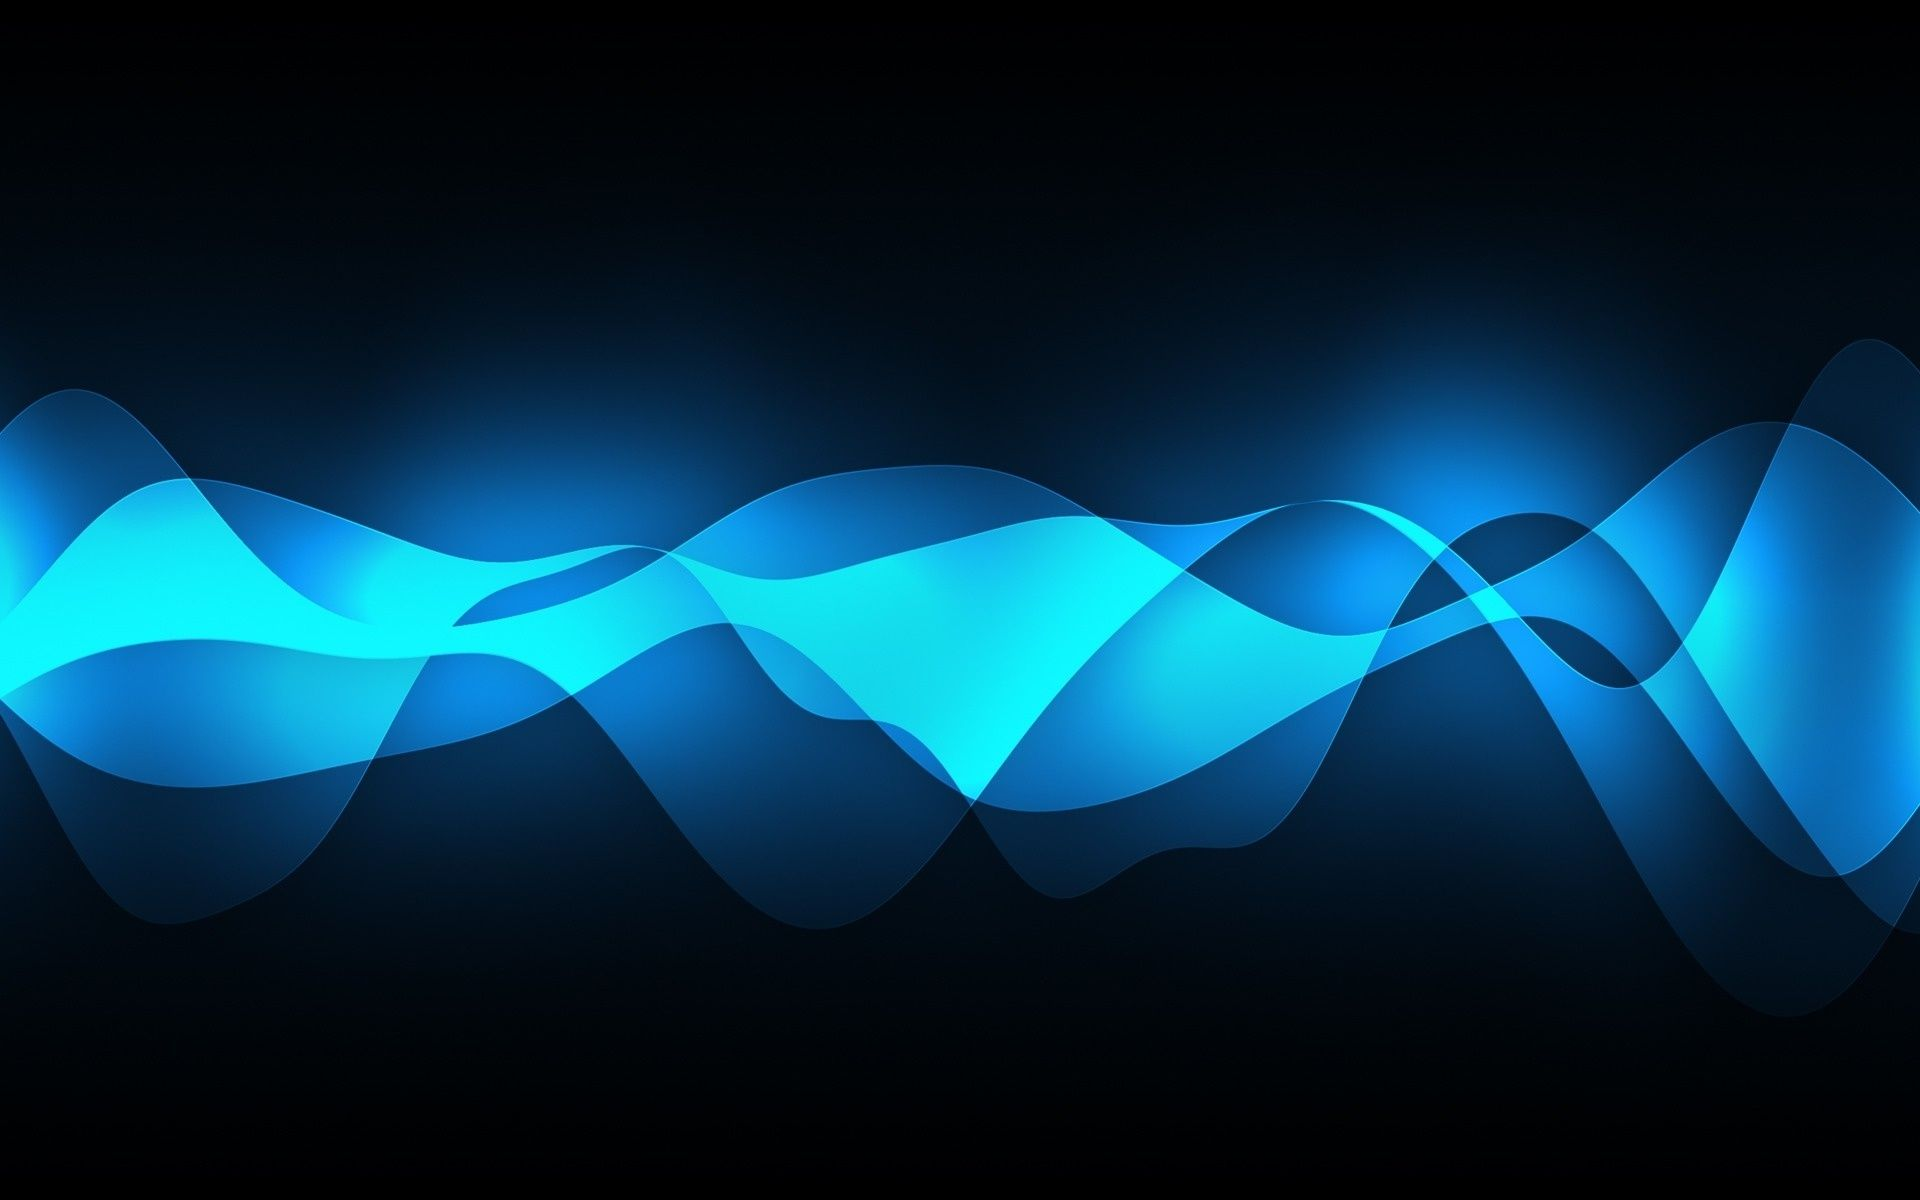 Blue Abstract Waves (click to view)